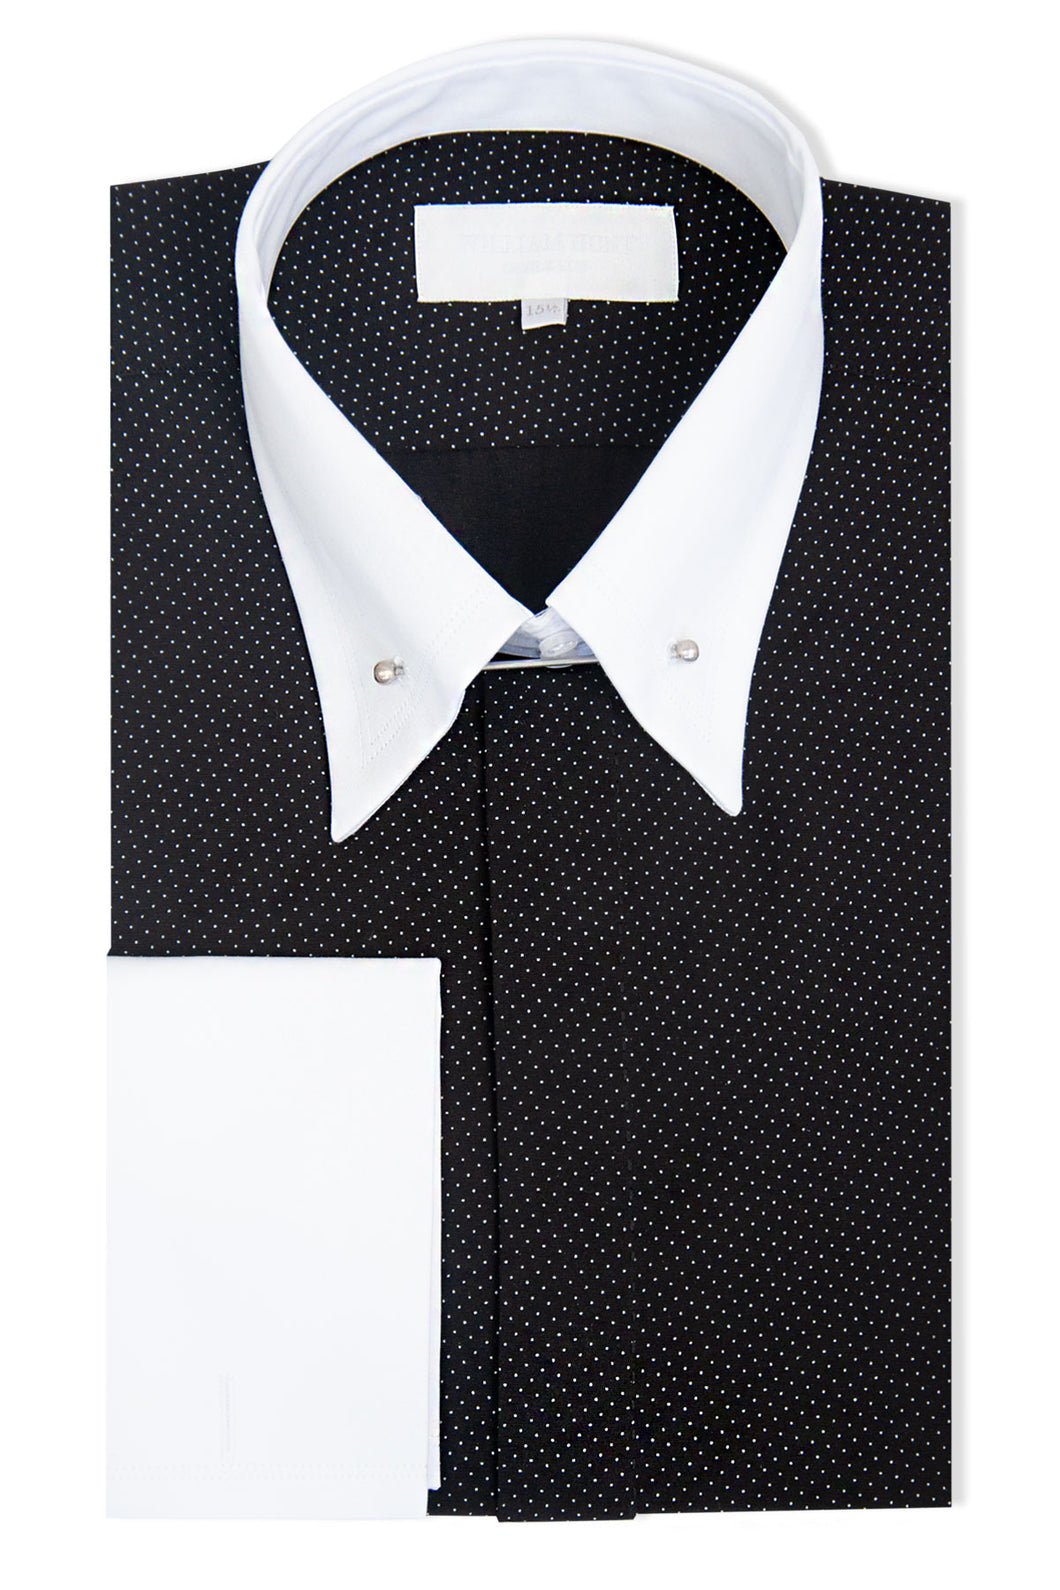 Black with White Pin Dot Forward Point Shirt with Pin Collar